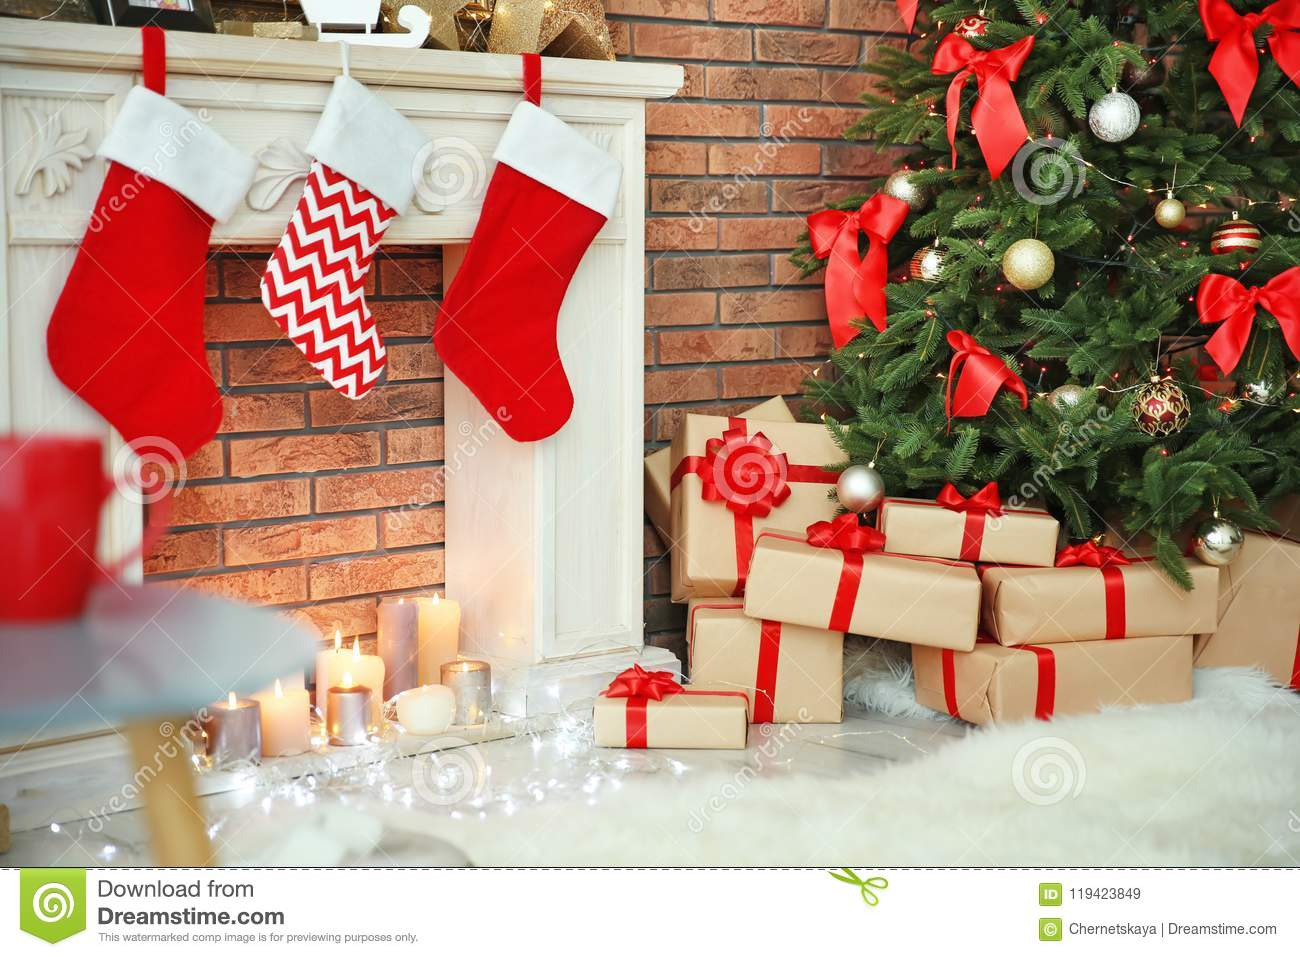 Beautiful Christmas Pictures.Beautiful Christmas Tree And Gifts Stock Image Image Of